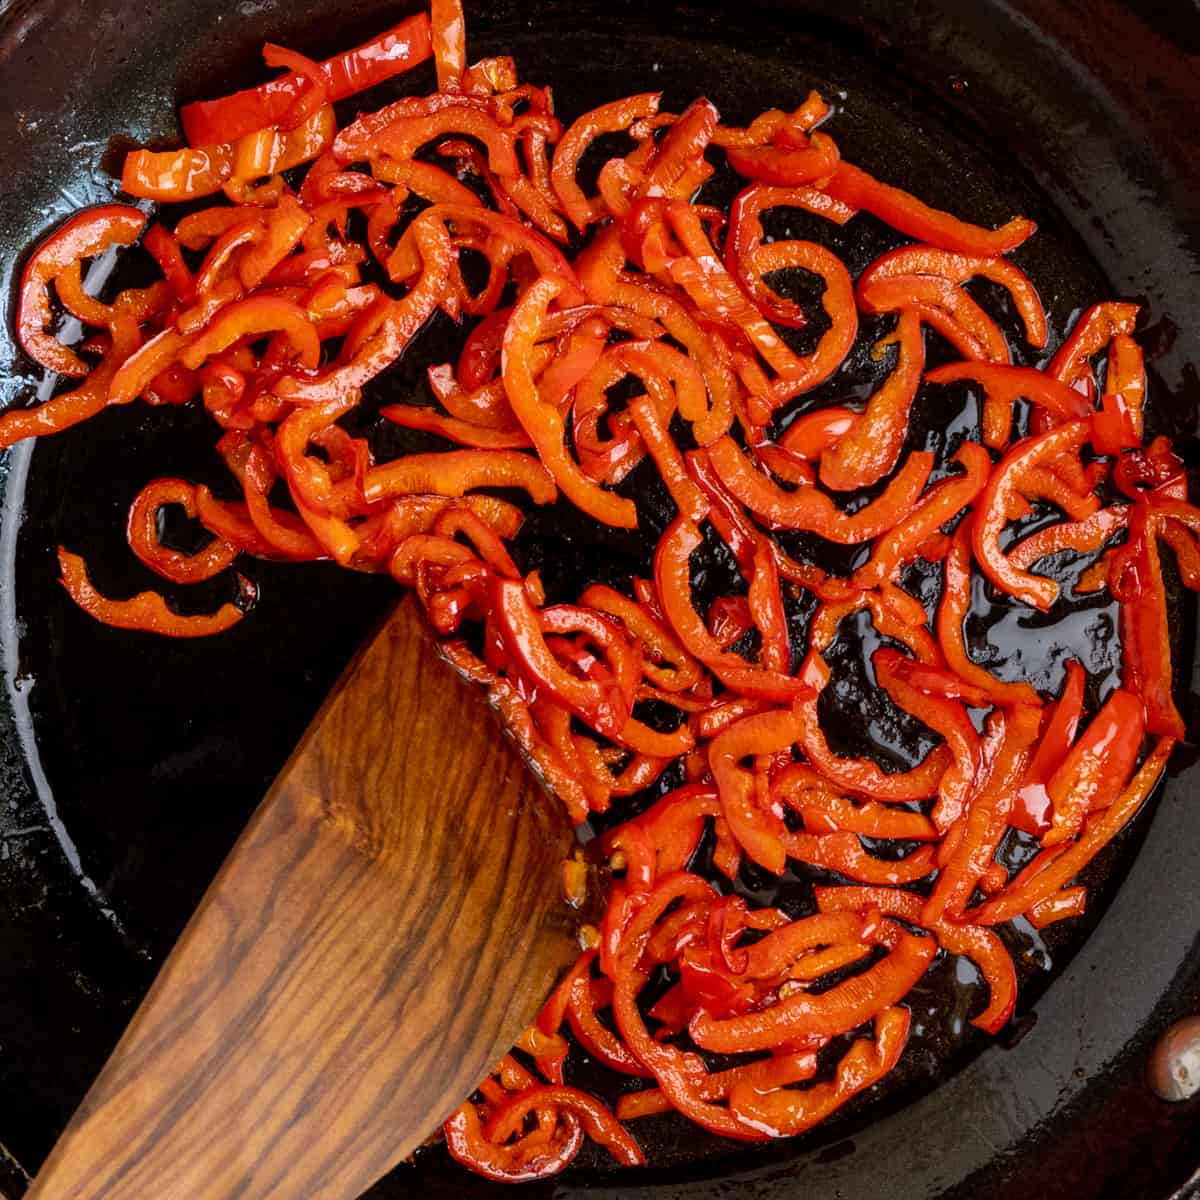 Sliced red pepper being fried in a frying pan.